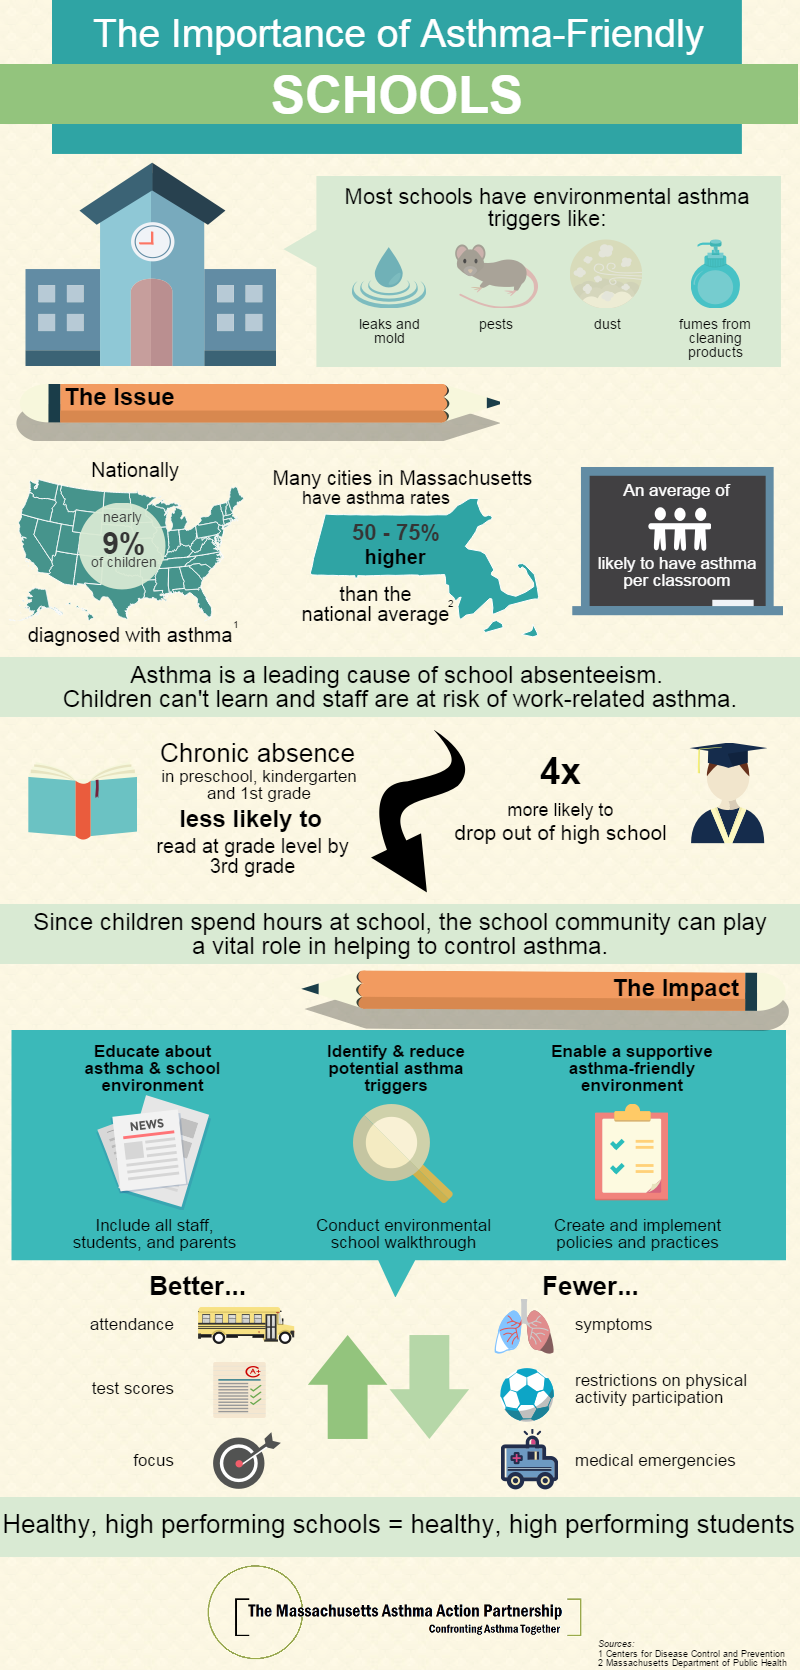 Asthma-Friendly Schools Infographic